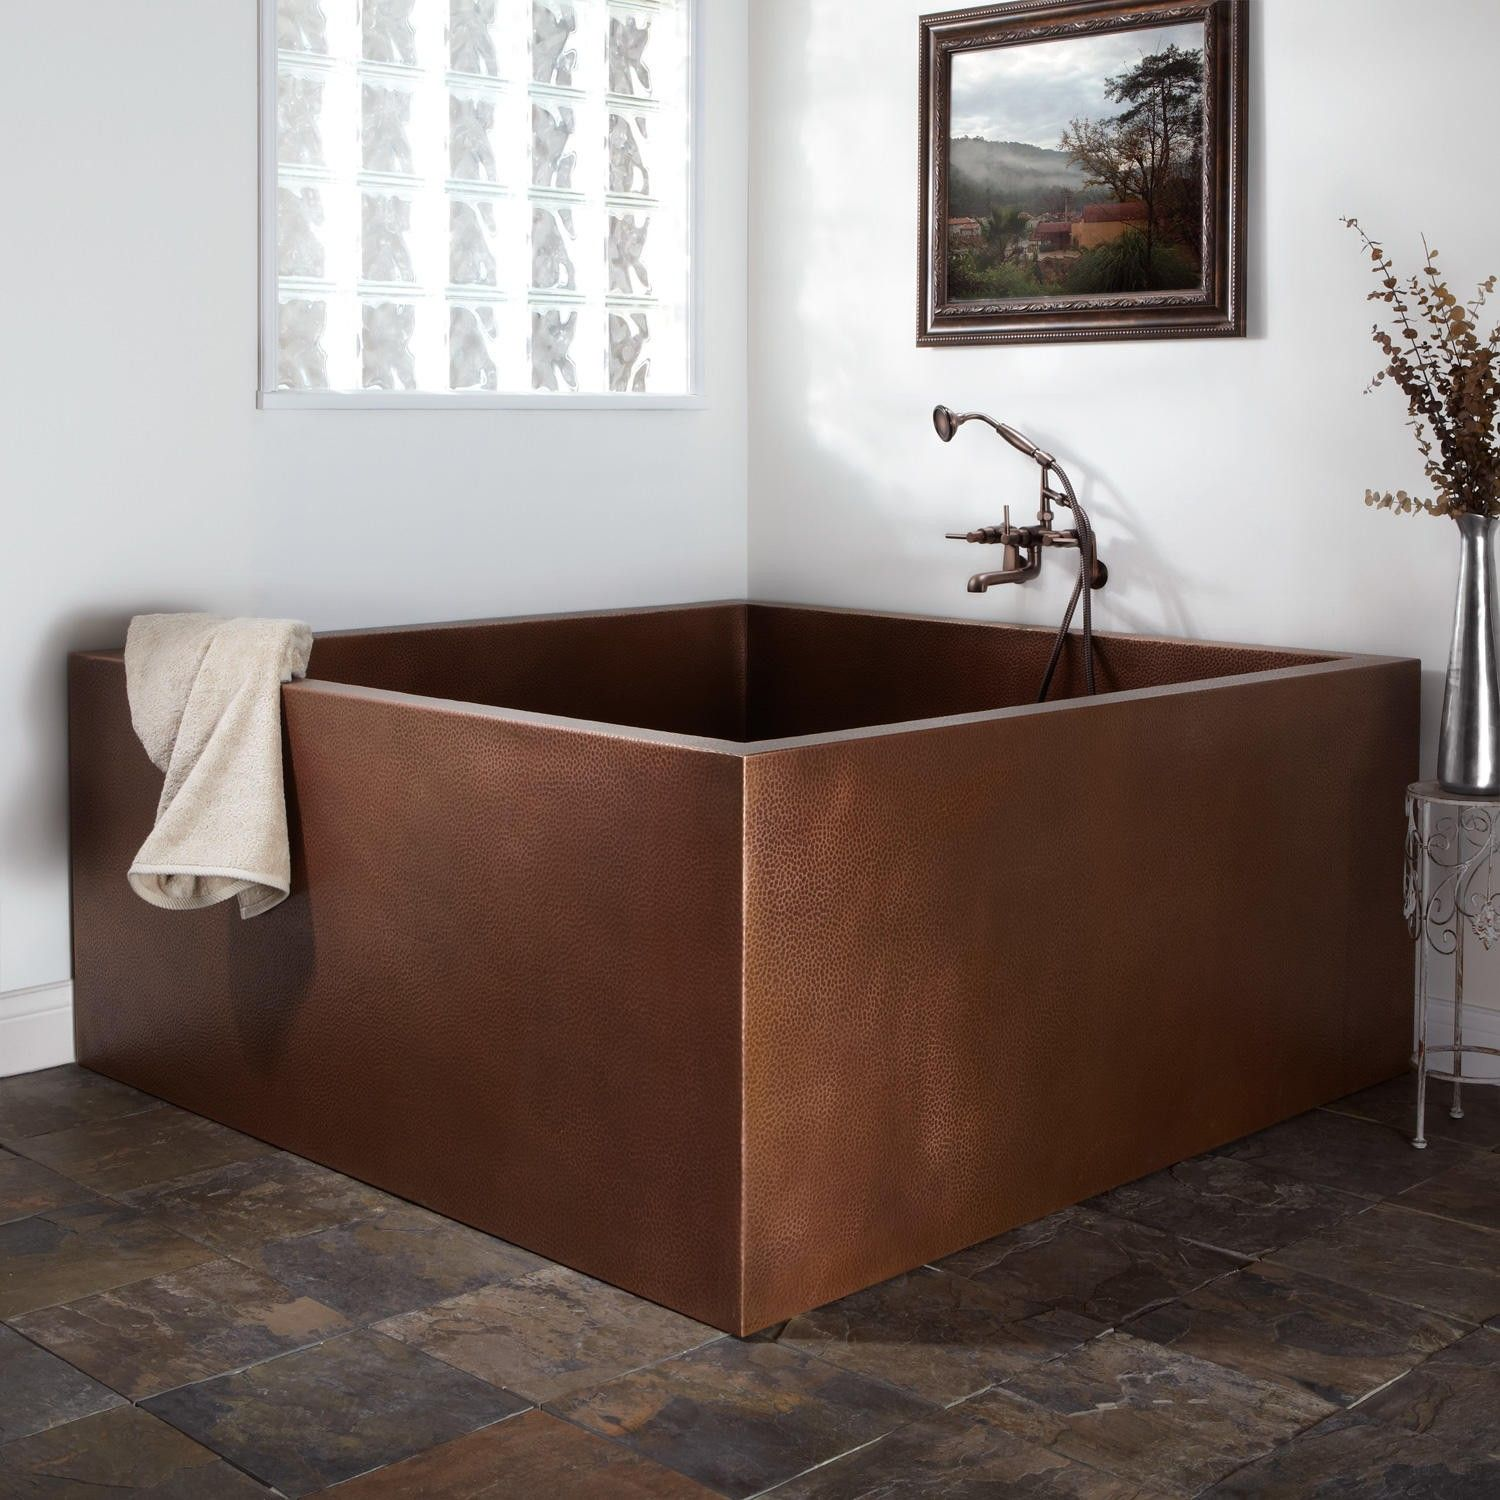 60 Elsinore Double Wall Square Hammered Copper Soaking Tub  16